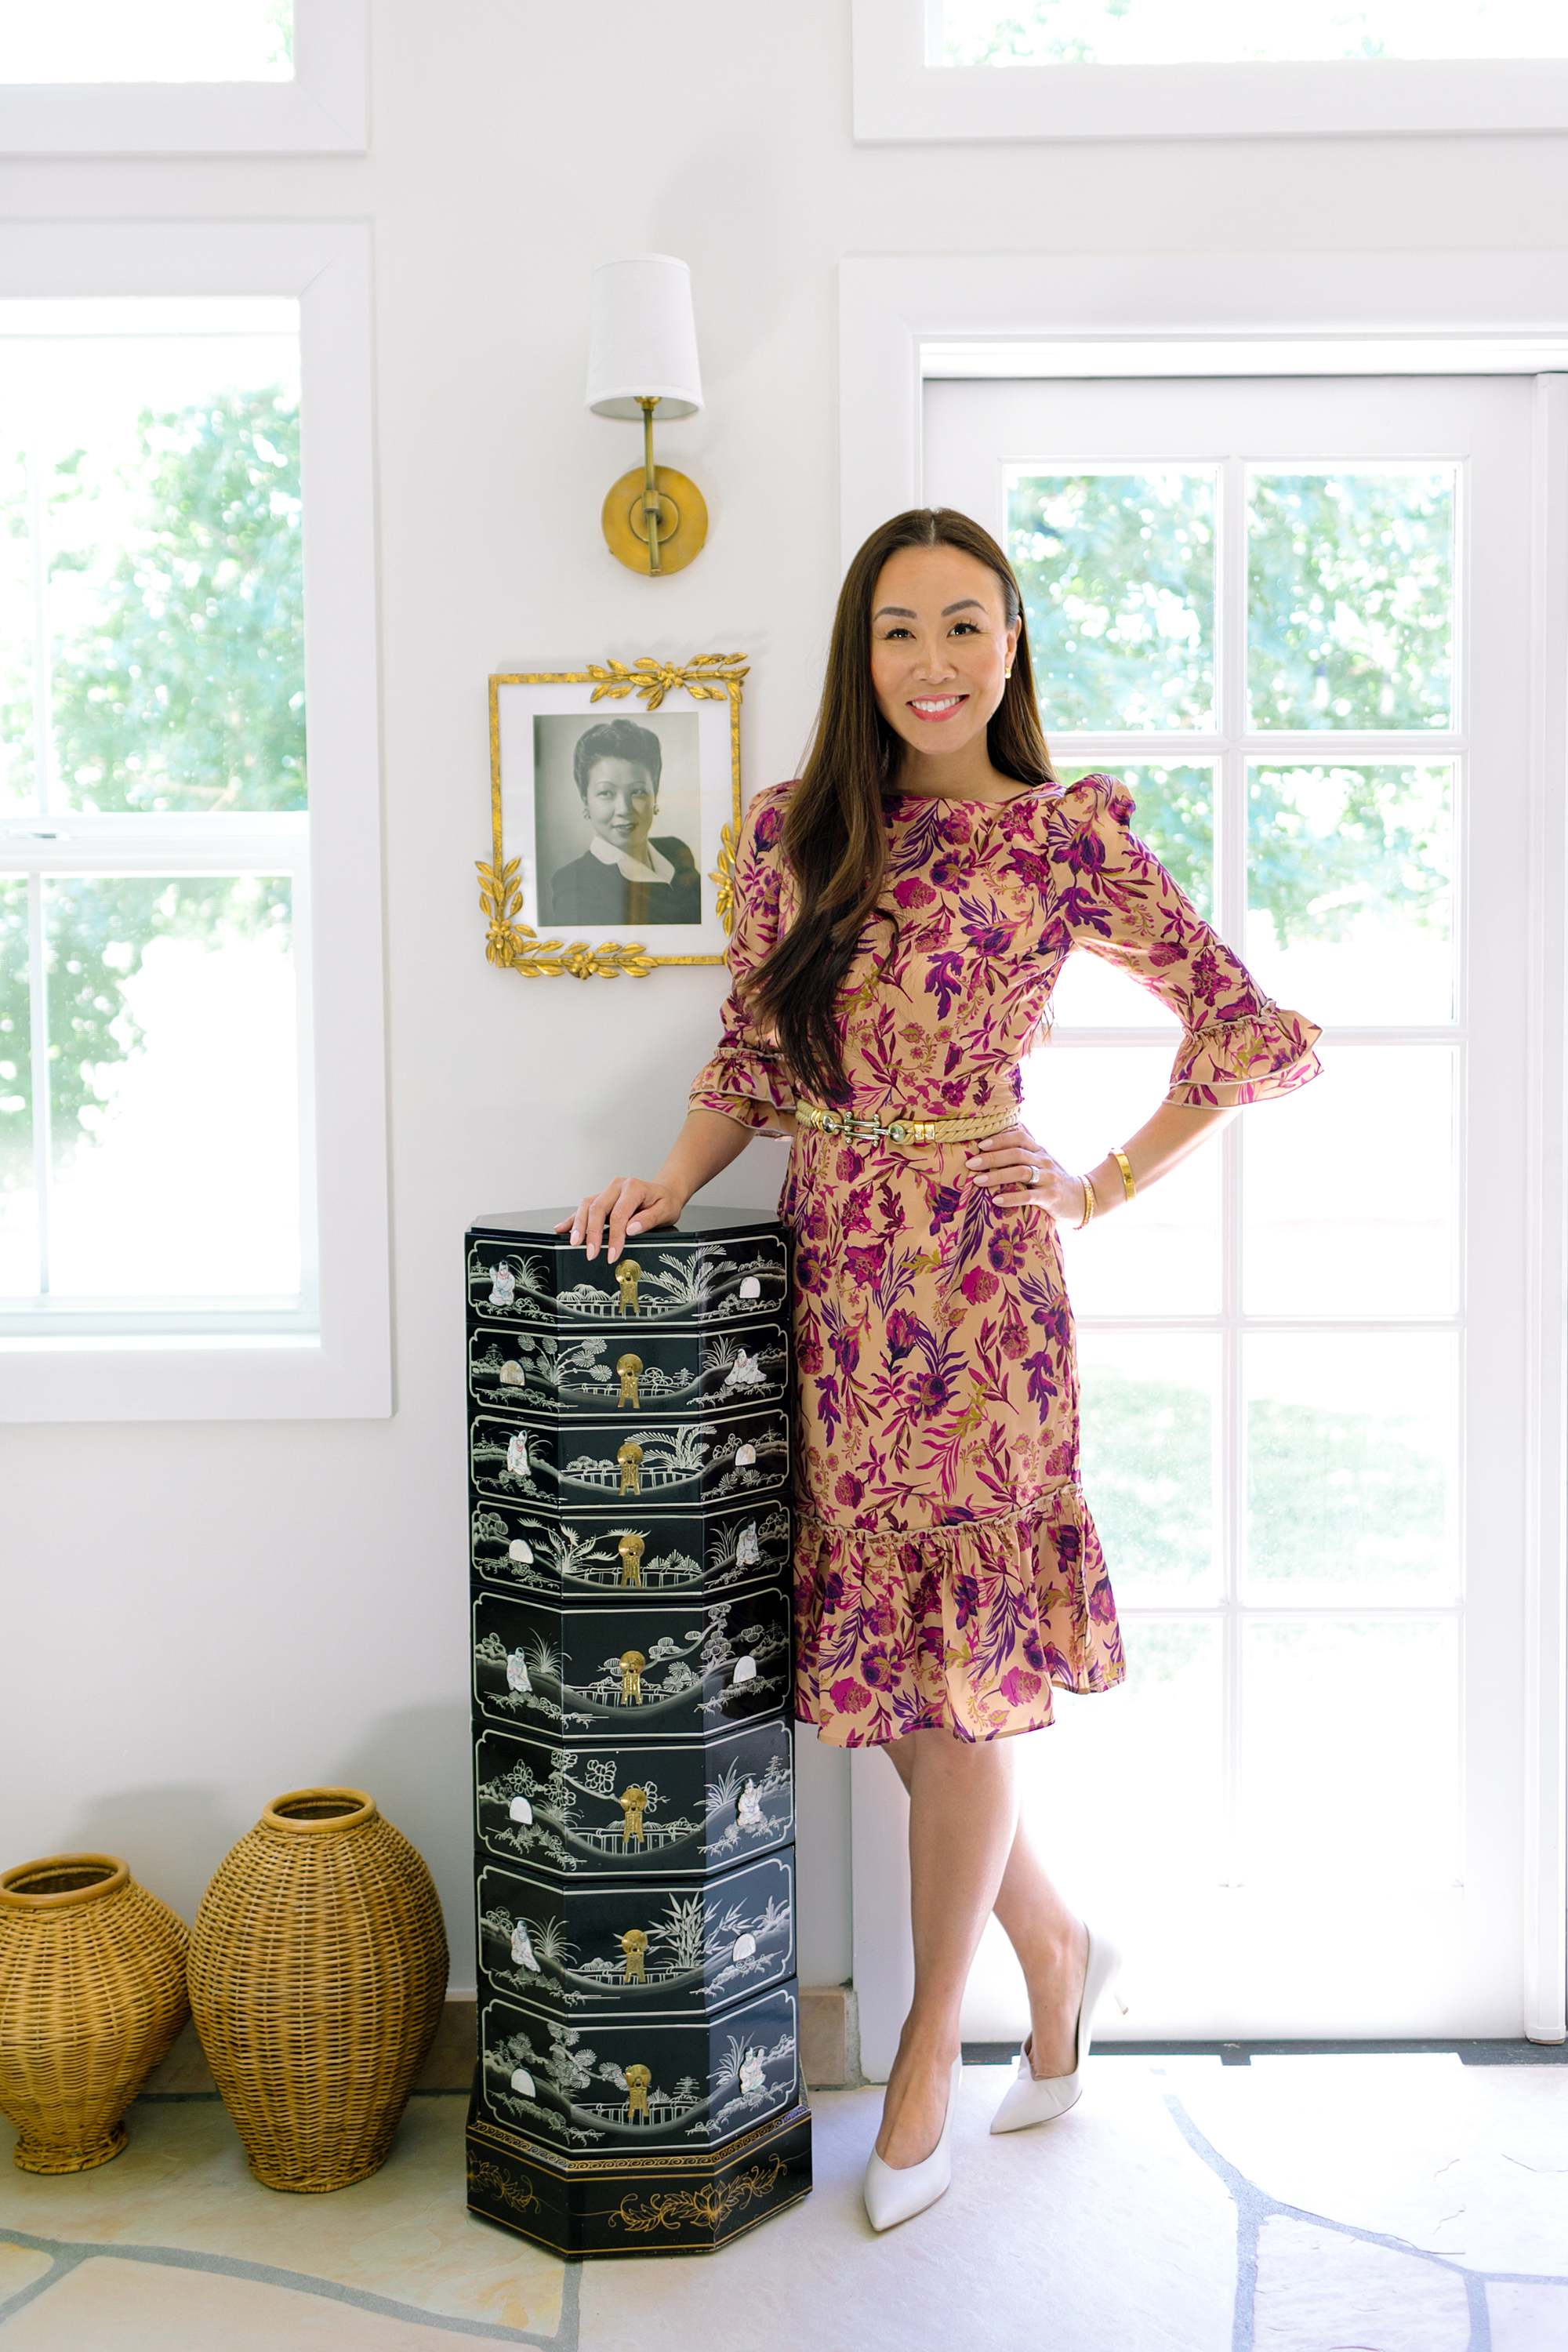 antique estate sale shopping tips and etiquette and how to find an estate sale